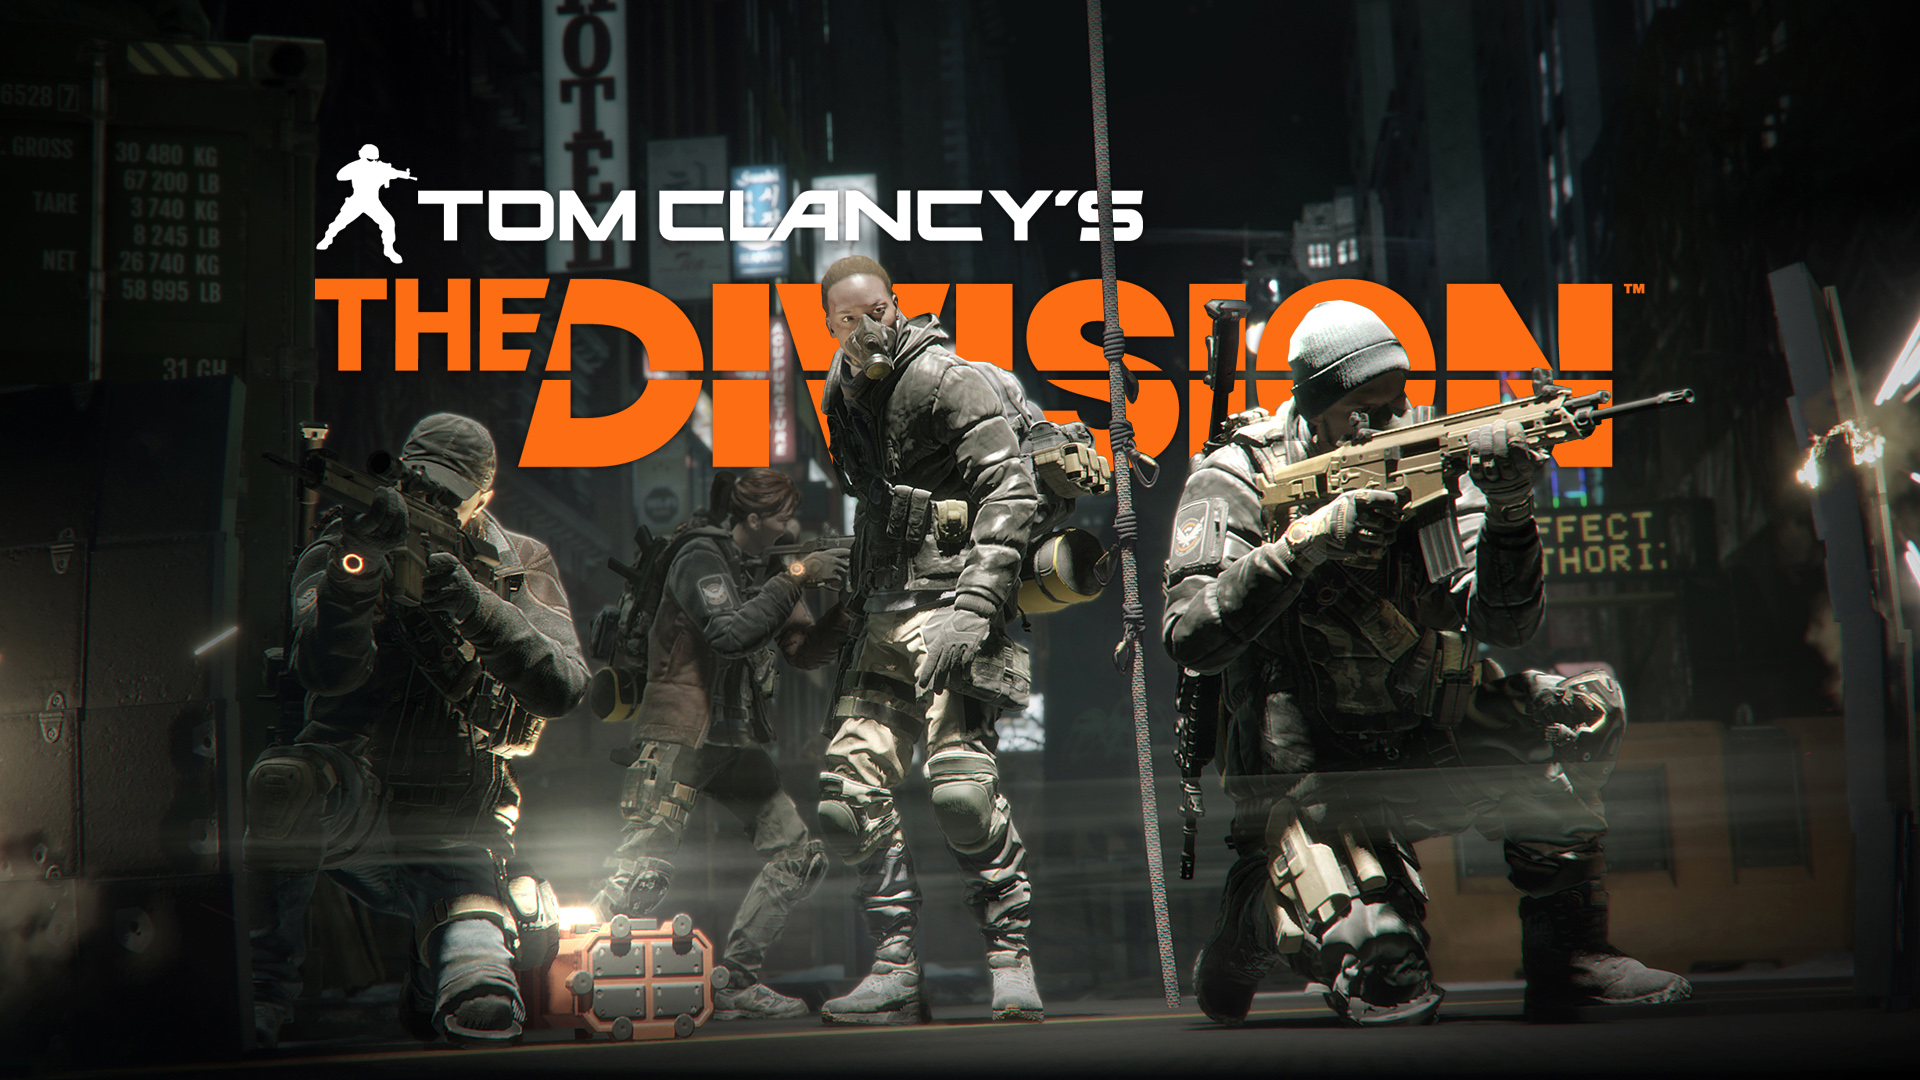 Tom clancys the division wallpaper hd background download facebook covers4